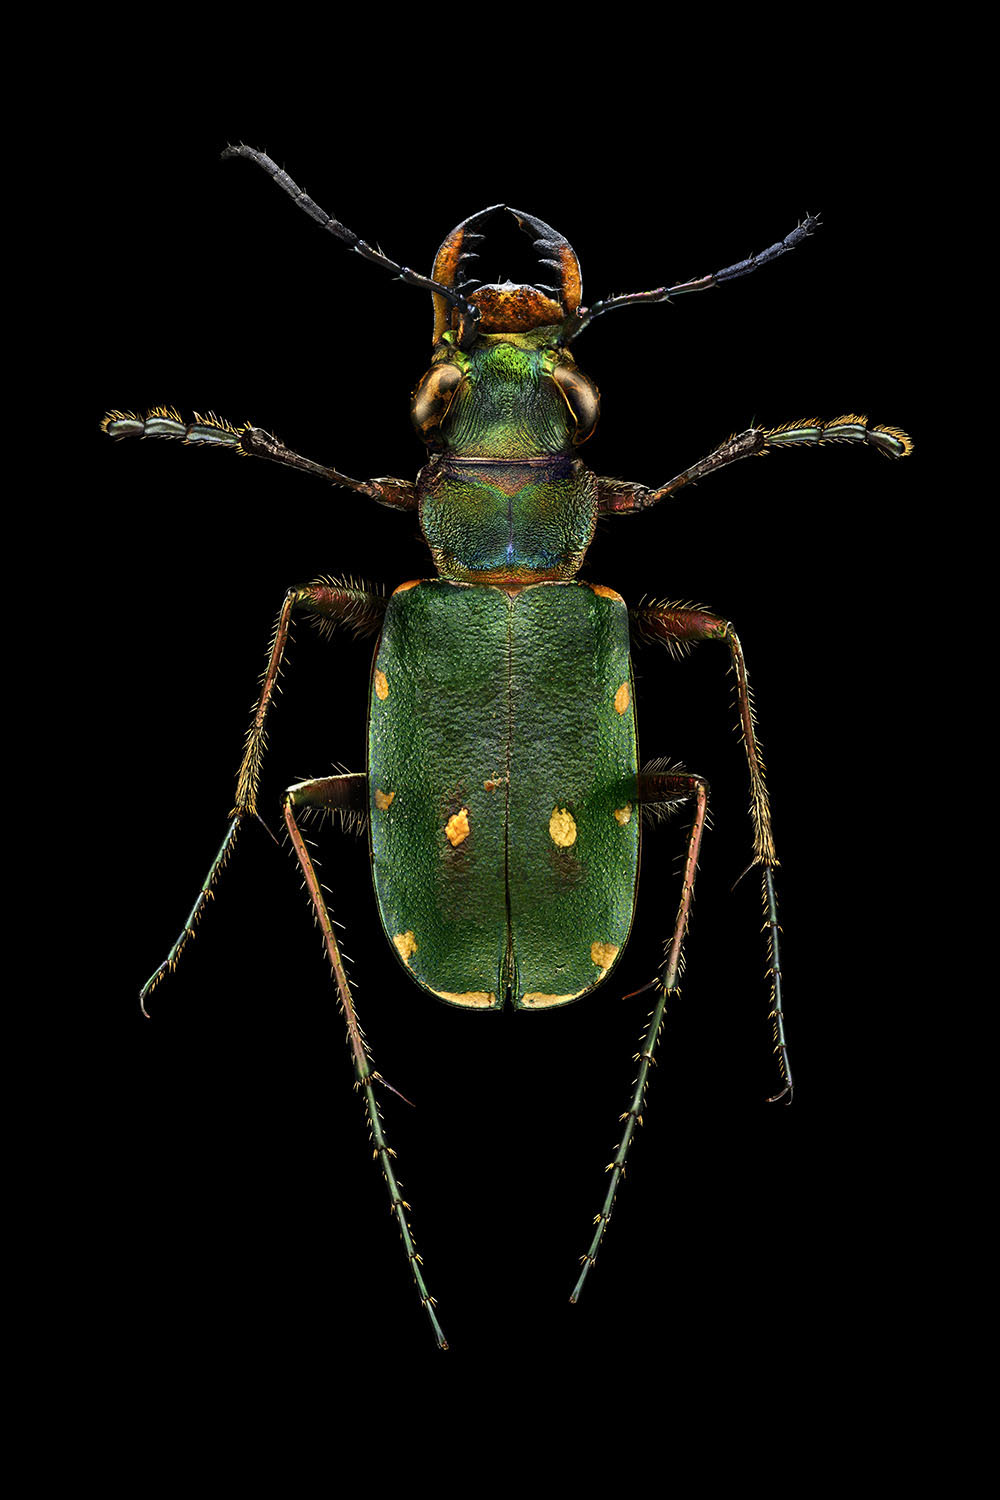 Green Tiger Beetle_4160MB.jpg